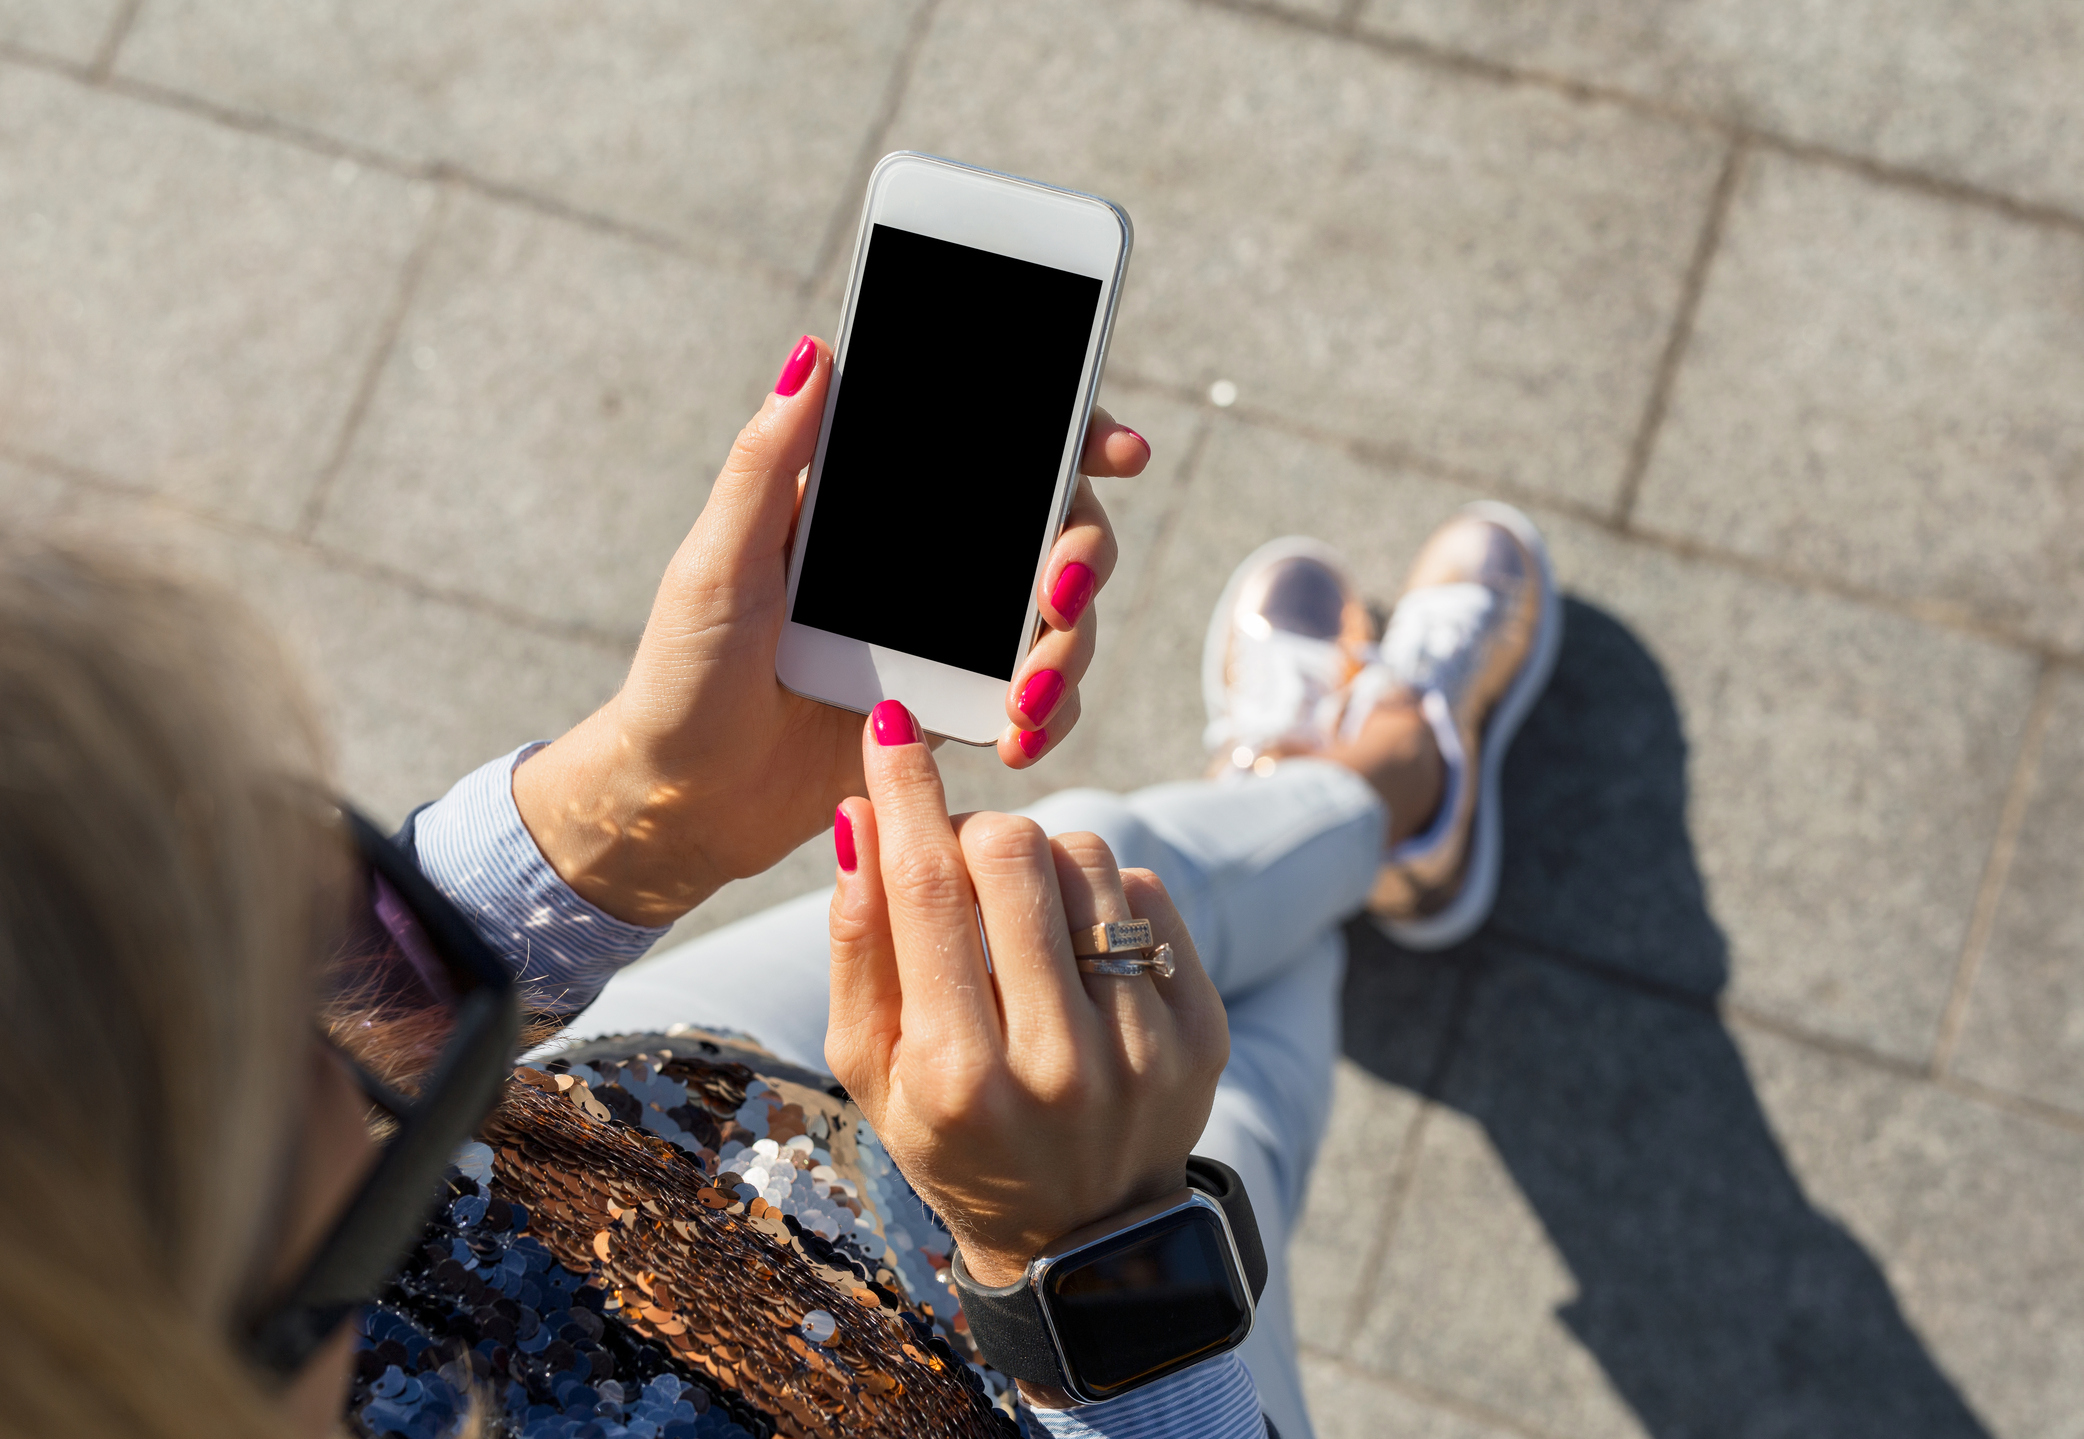 Five Things To Think About When Insuring Your Device - December 2017